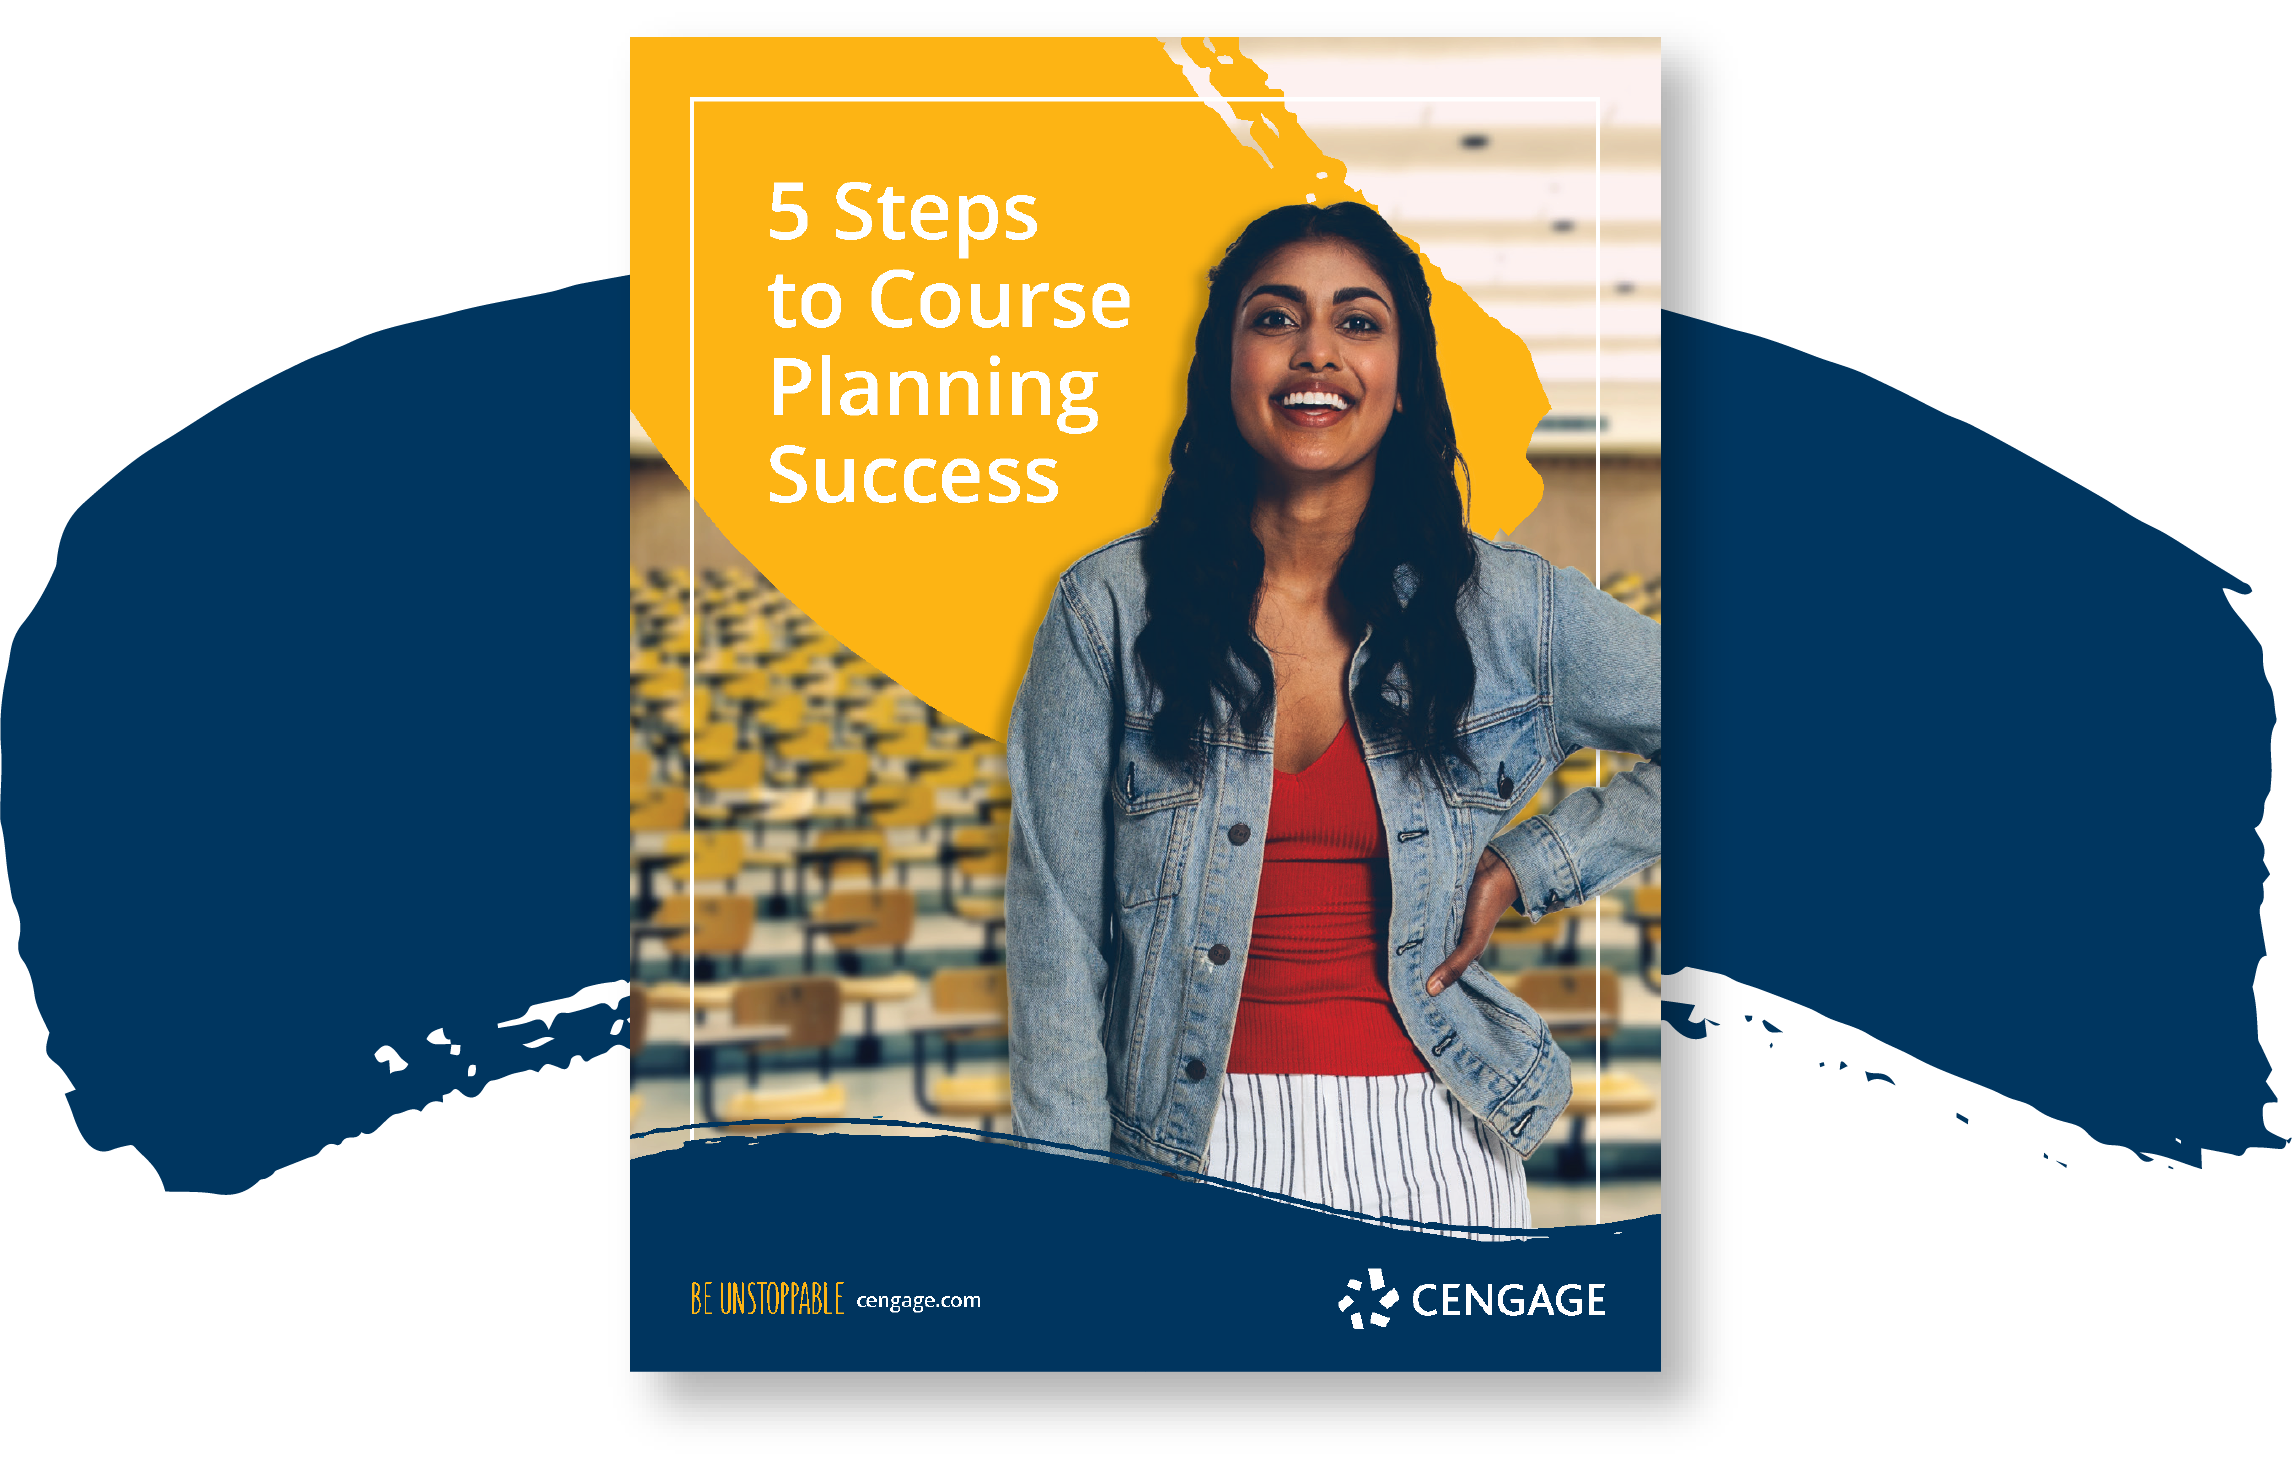 5 Steps to Course Planning Success